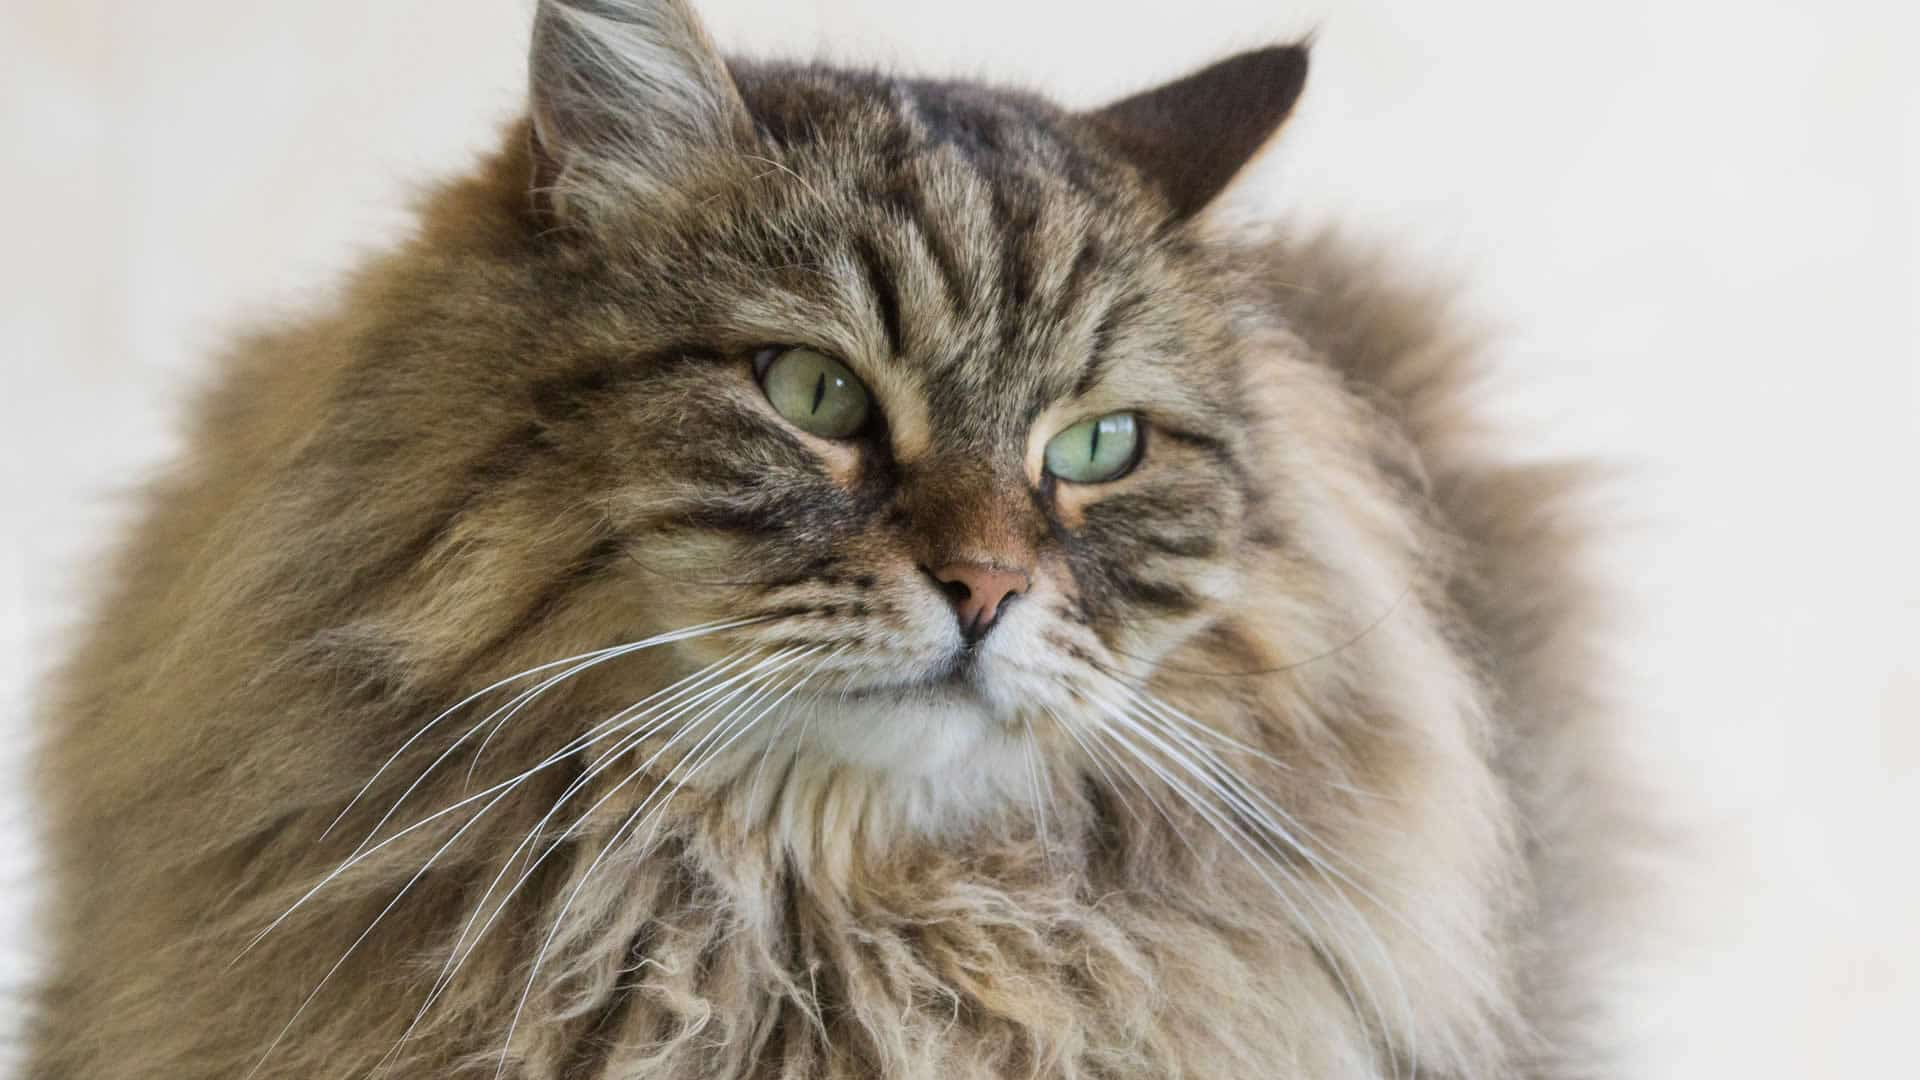 Siberian cat with thick coat and long whiskers